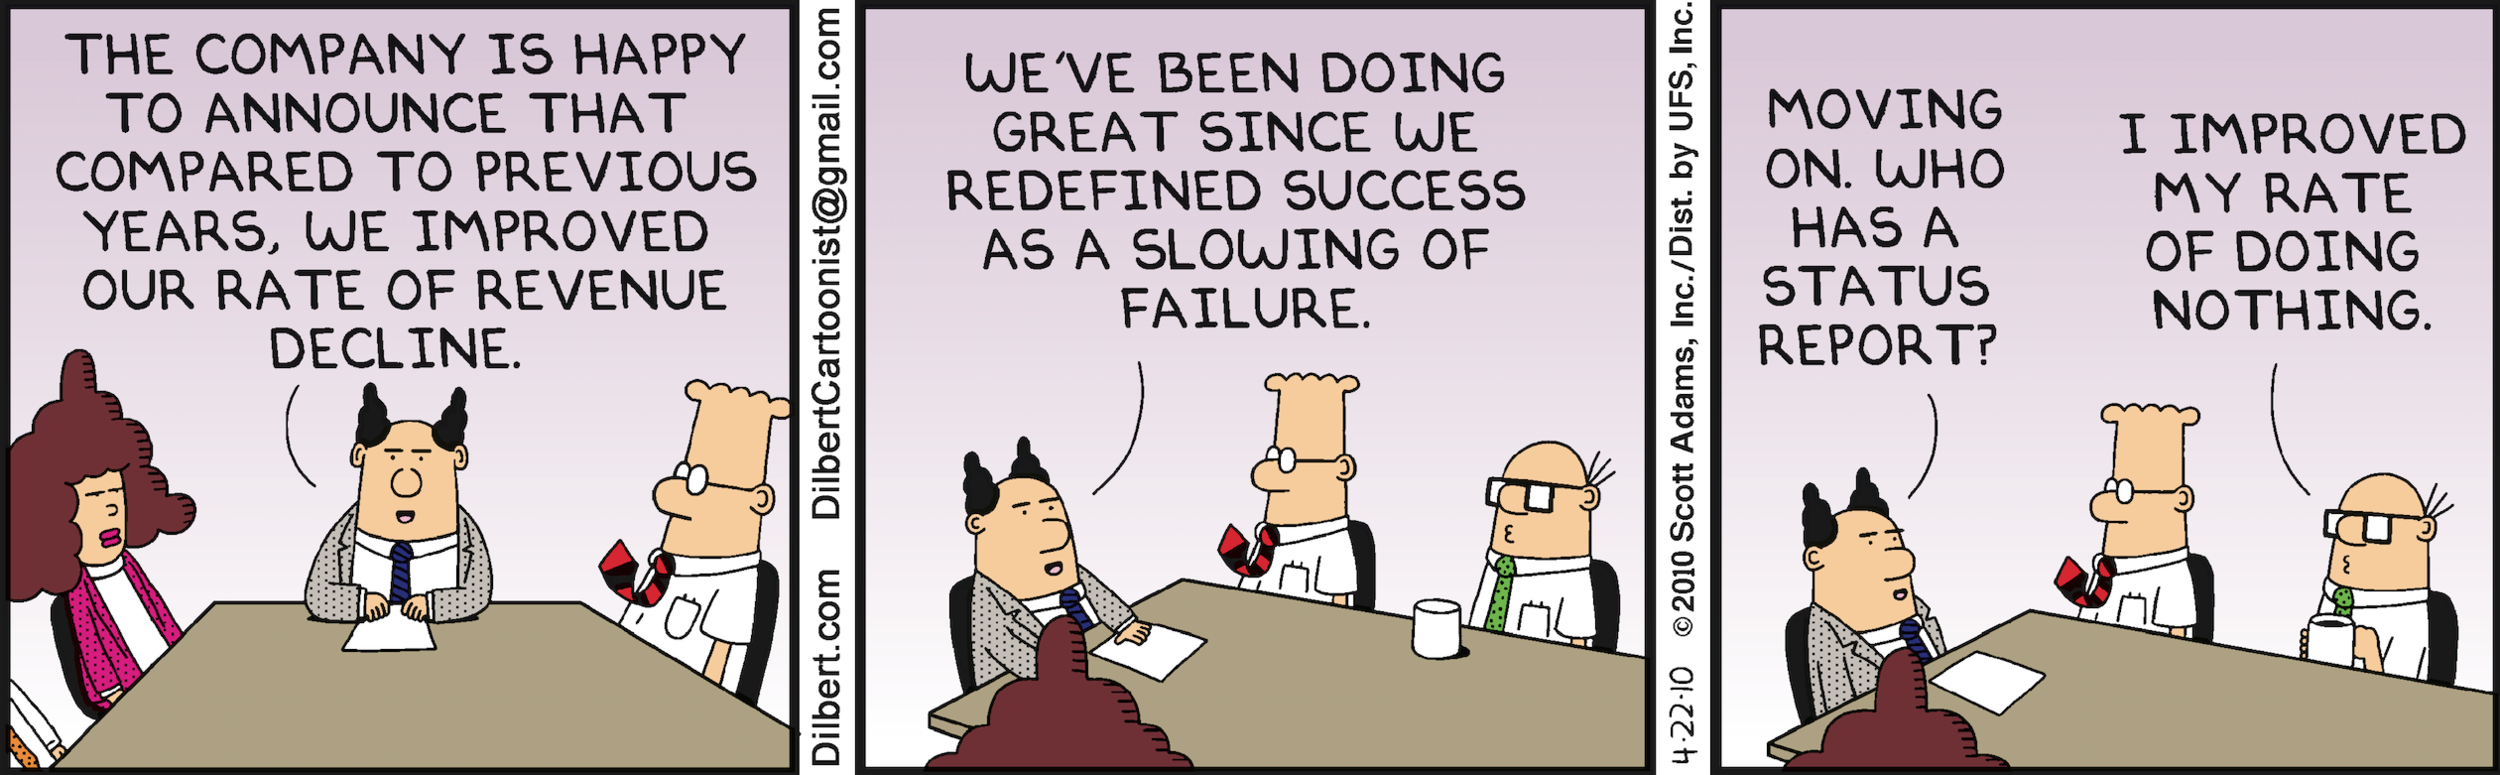 DILBERT   ©2010 Scott Adams. Used by permission of UNIVERSAL UCLICK. All rights reserved.